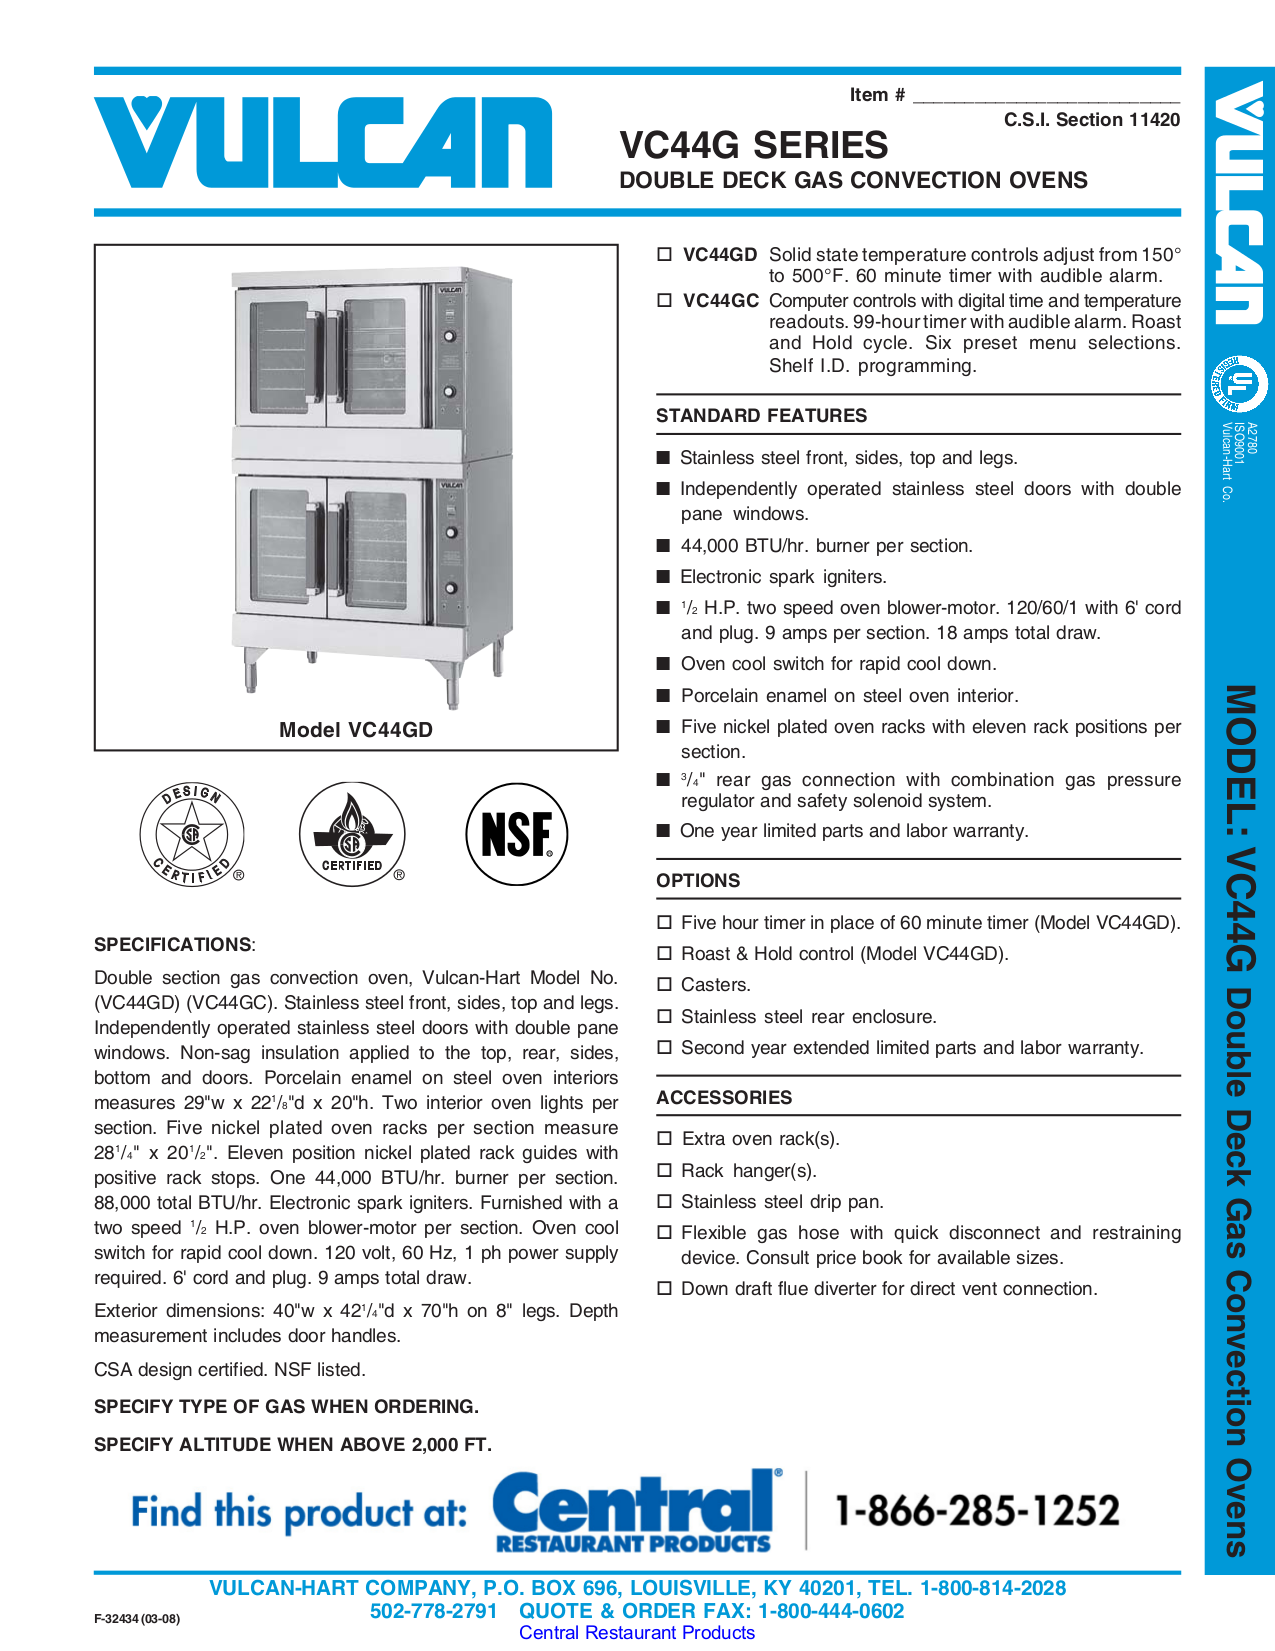 pdf for Vulcan Oven VC44GD manual